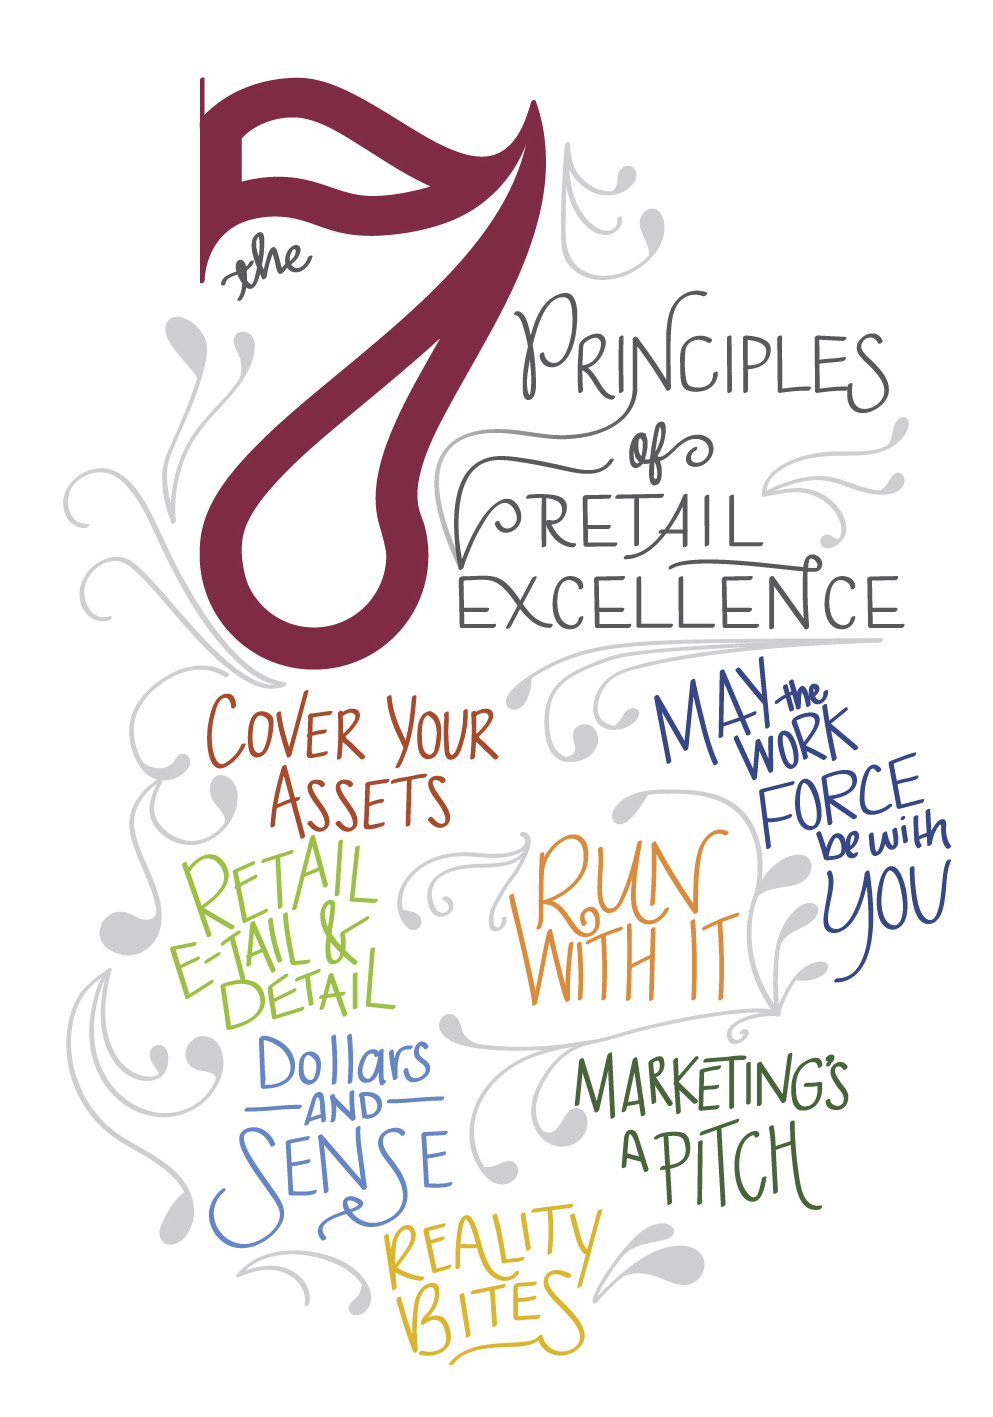 7 principals of retail excellence